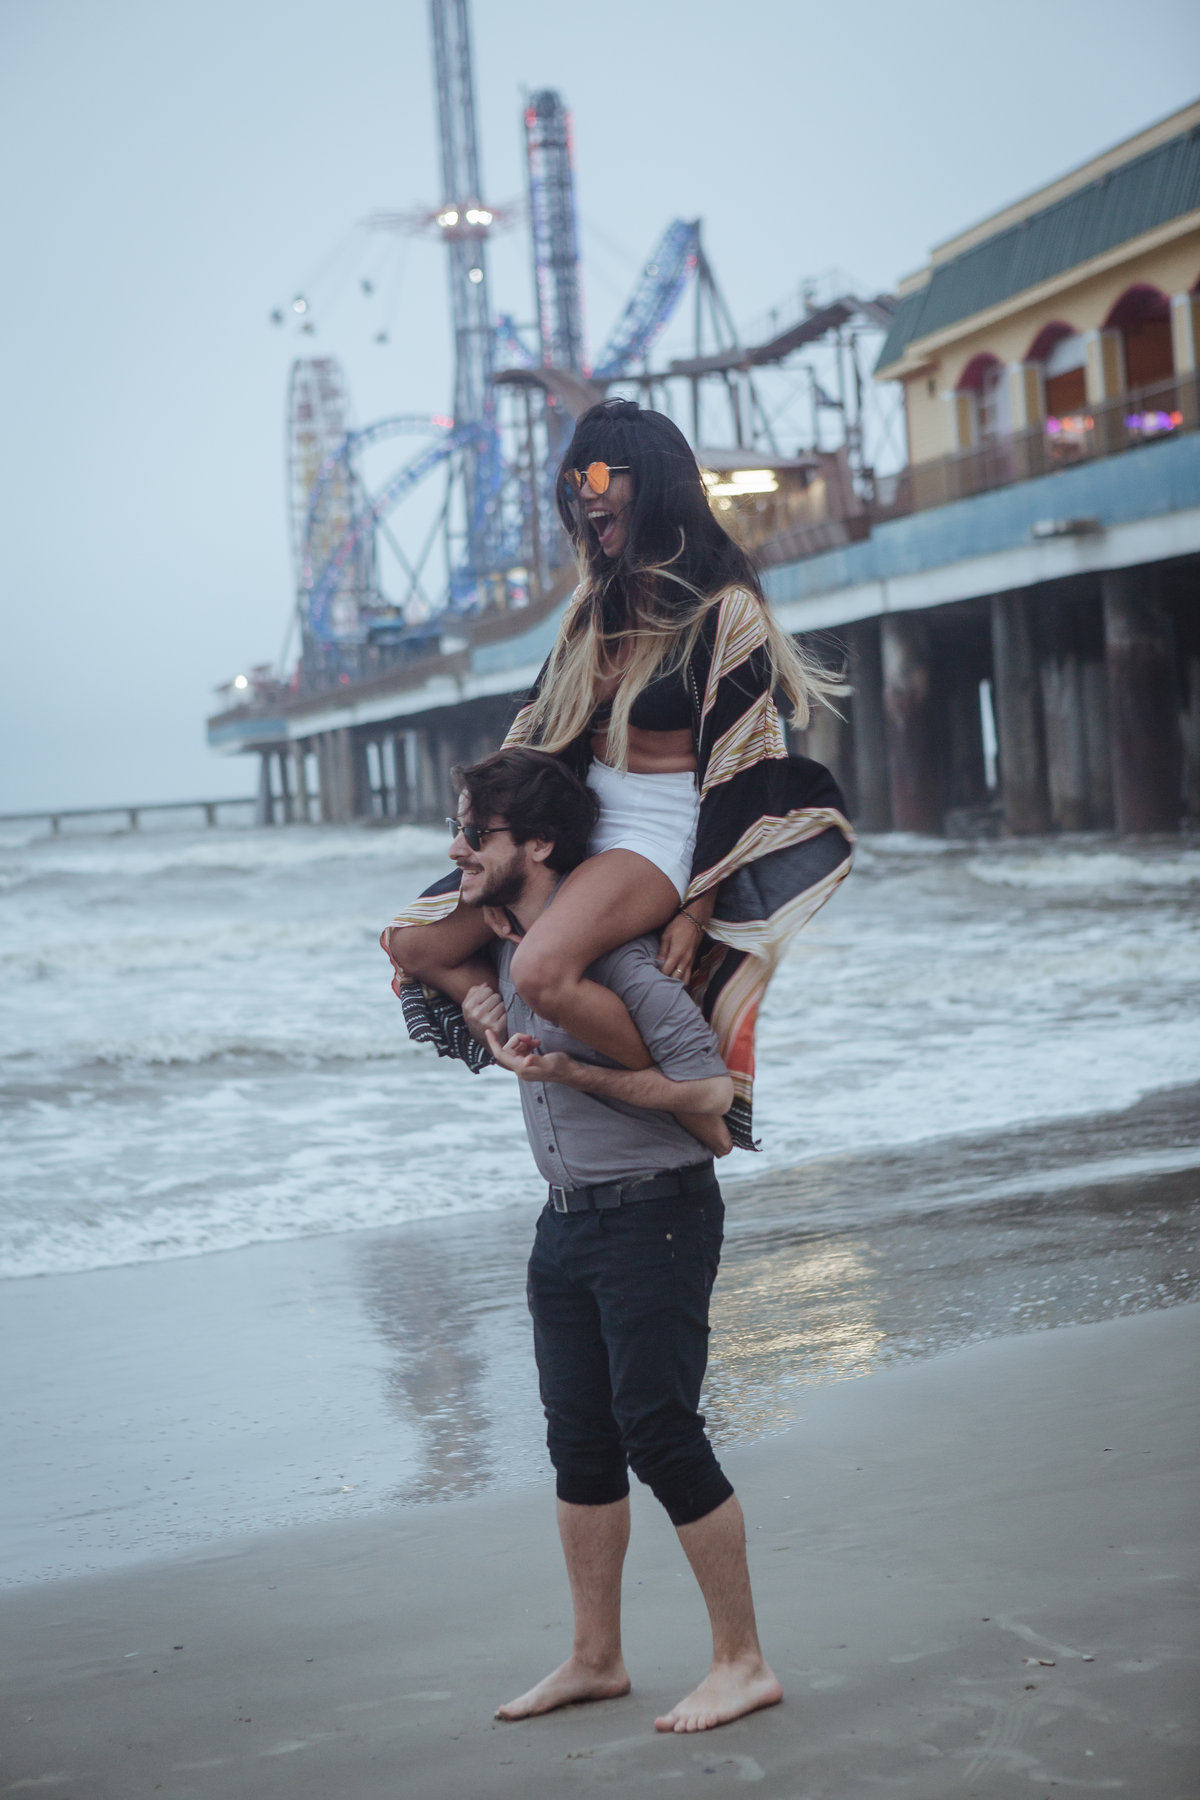 Lynsie.Rae.Photography_2018 Galveston_Couple at the Pier-25